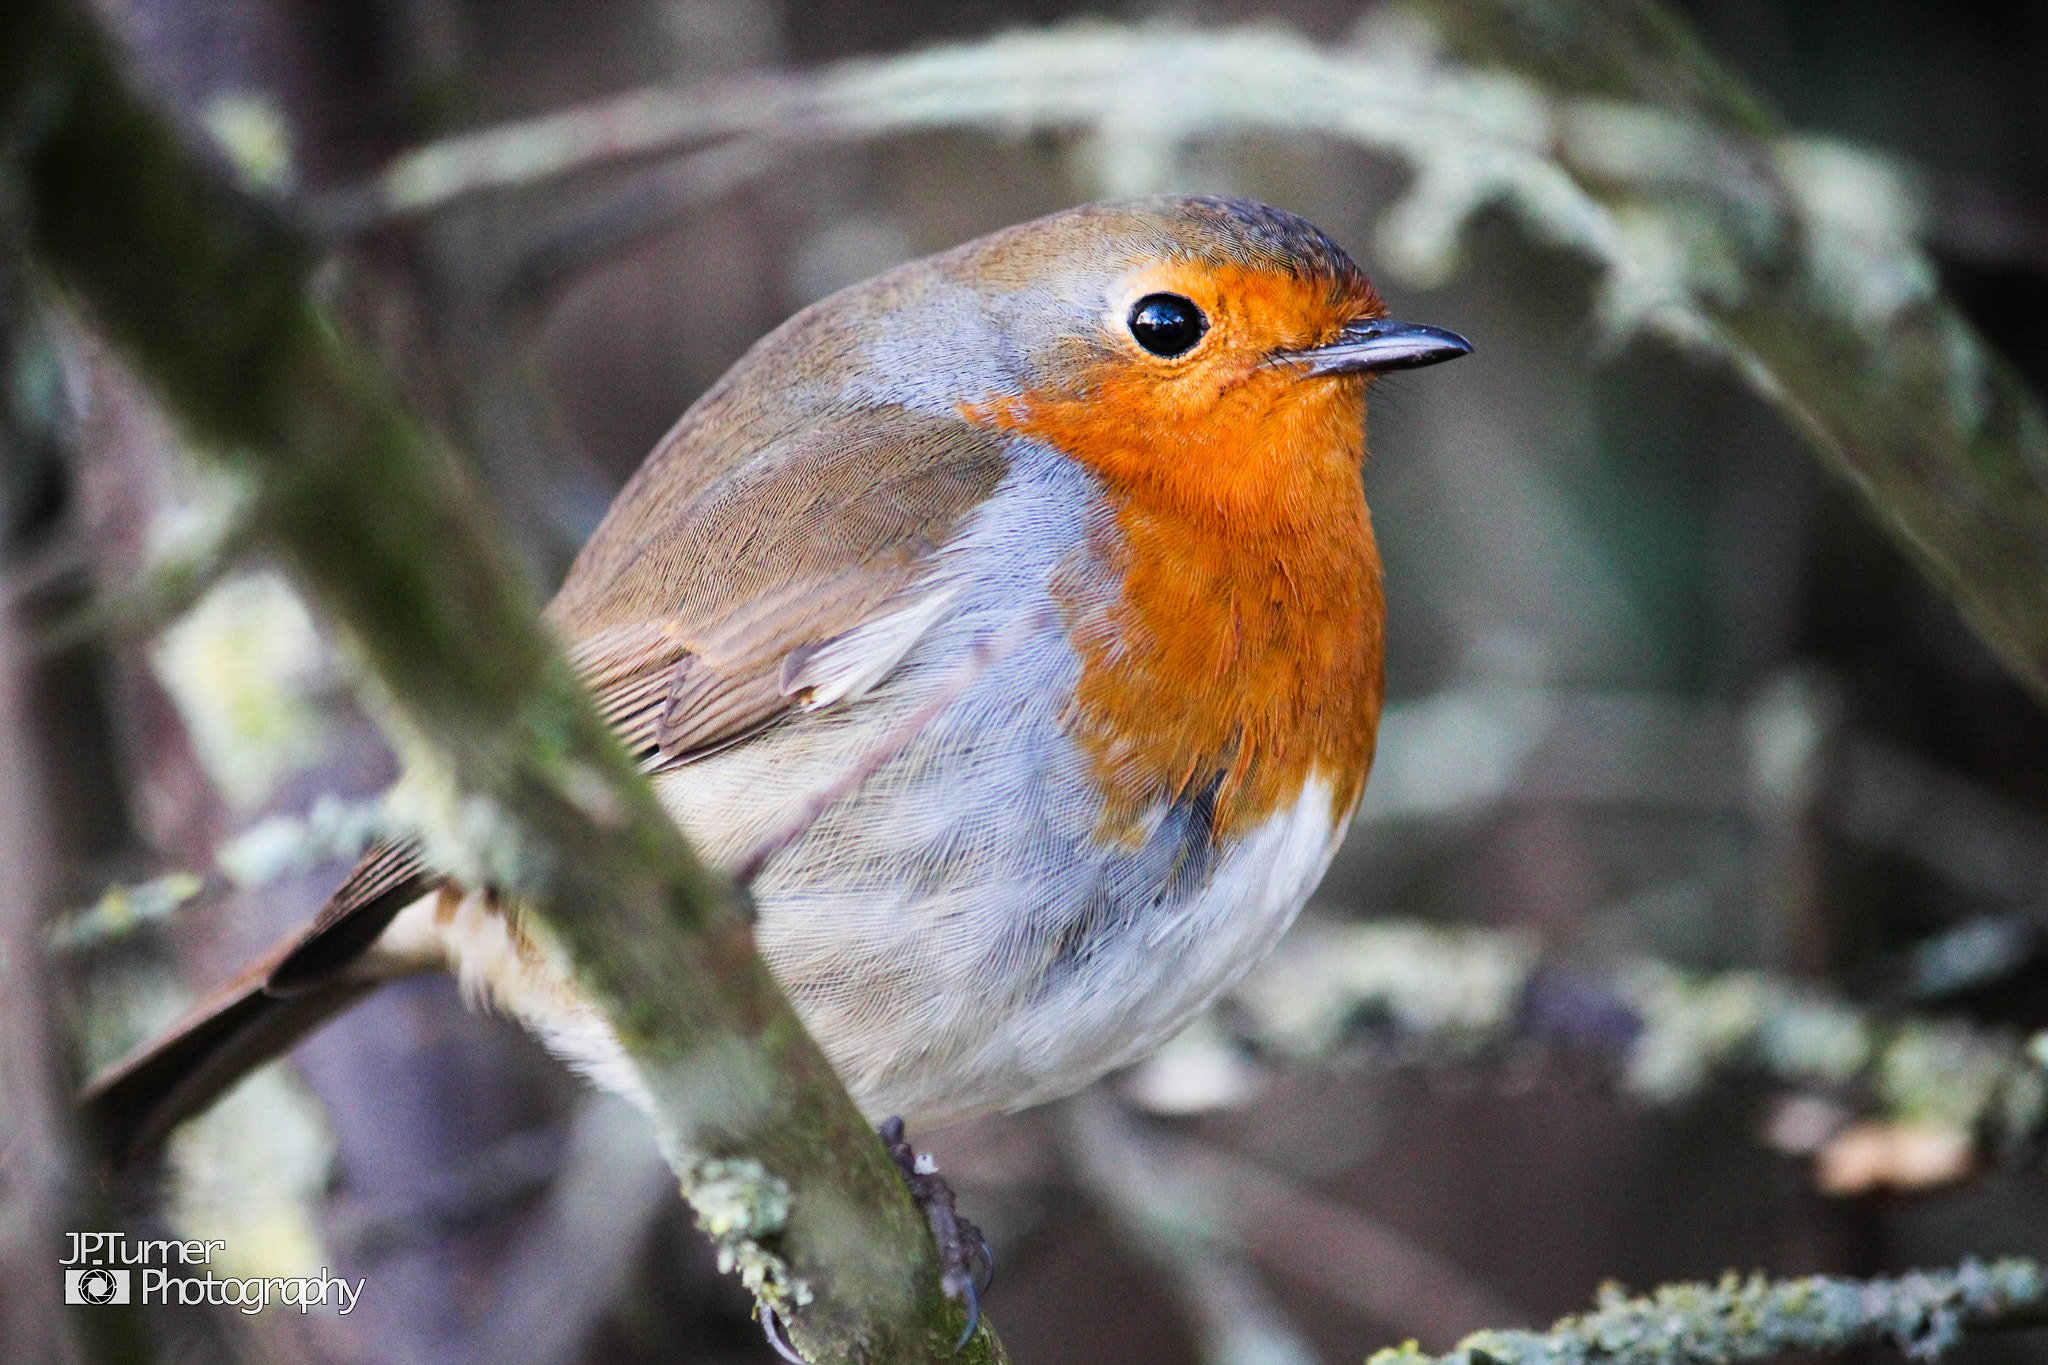 Photograph The Robin by Jona Turner on 500px